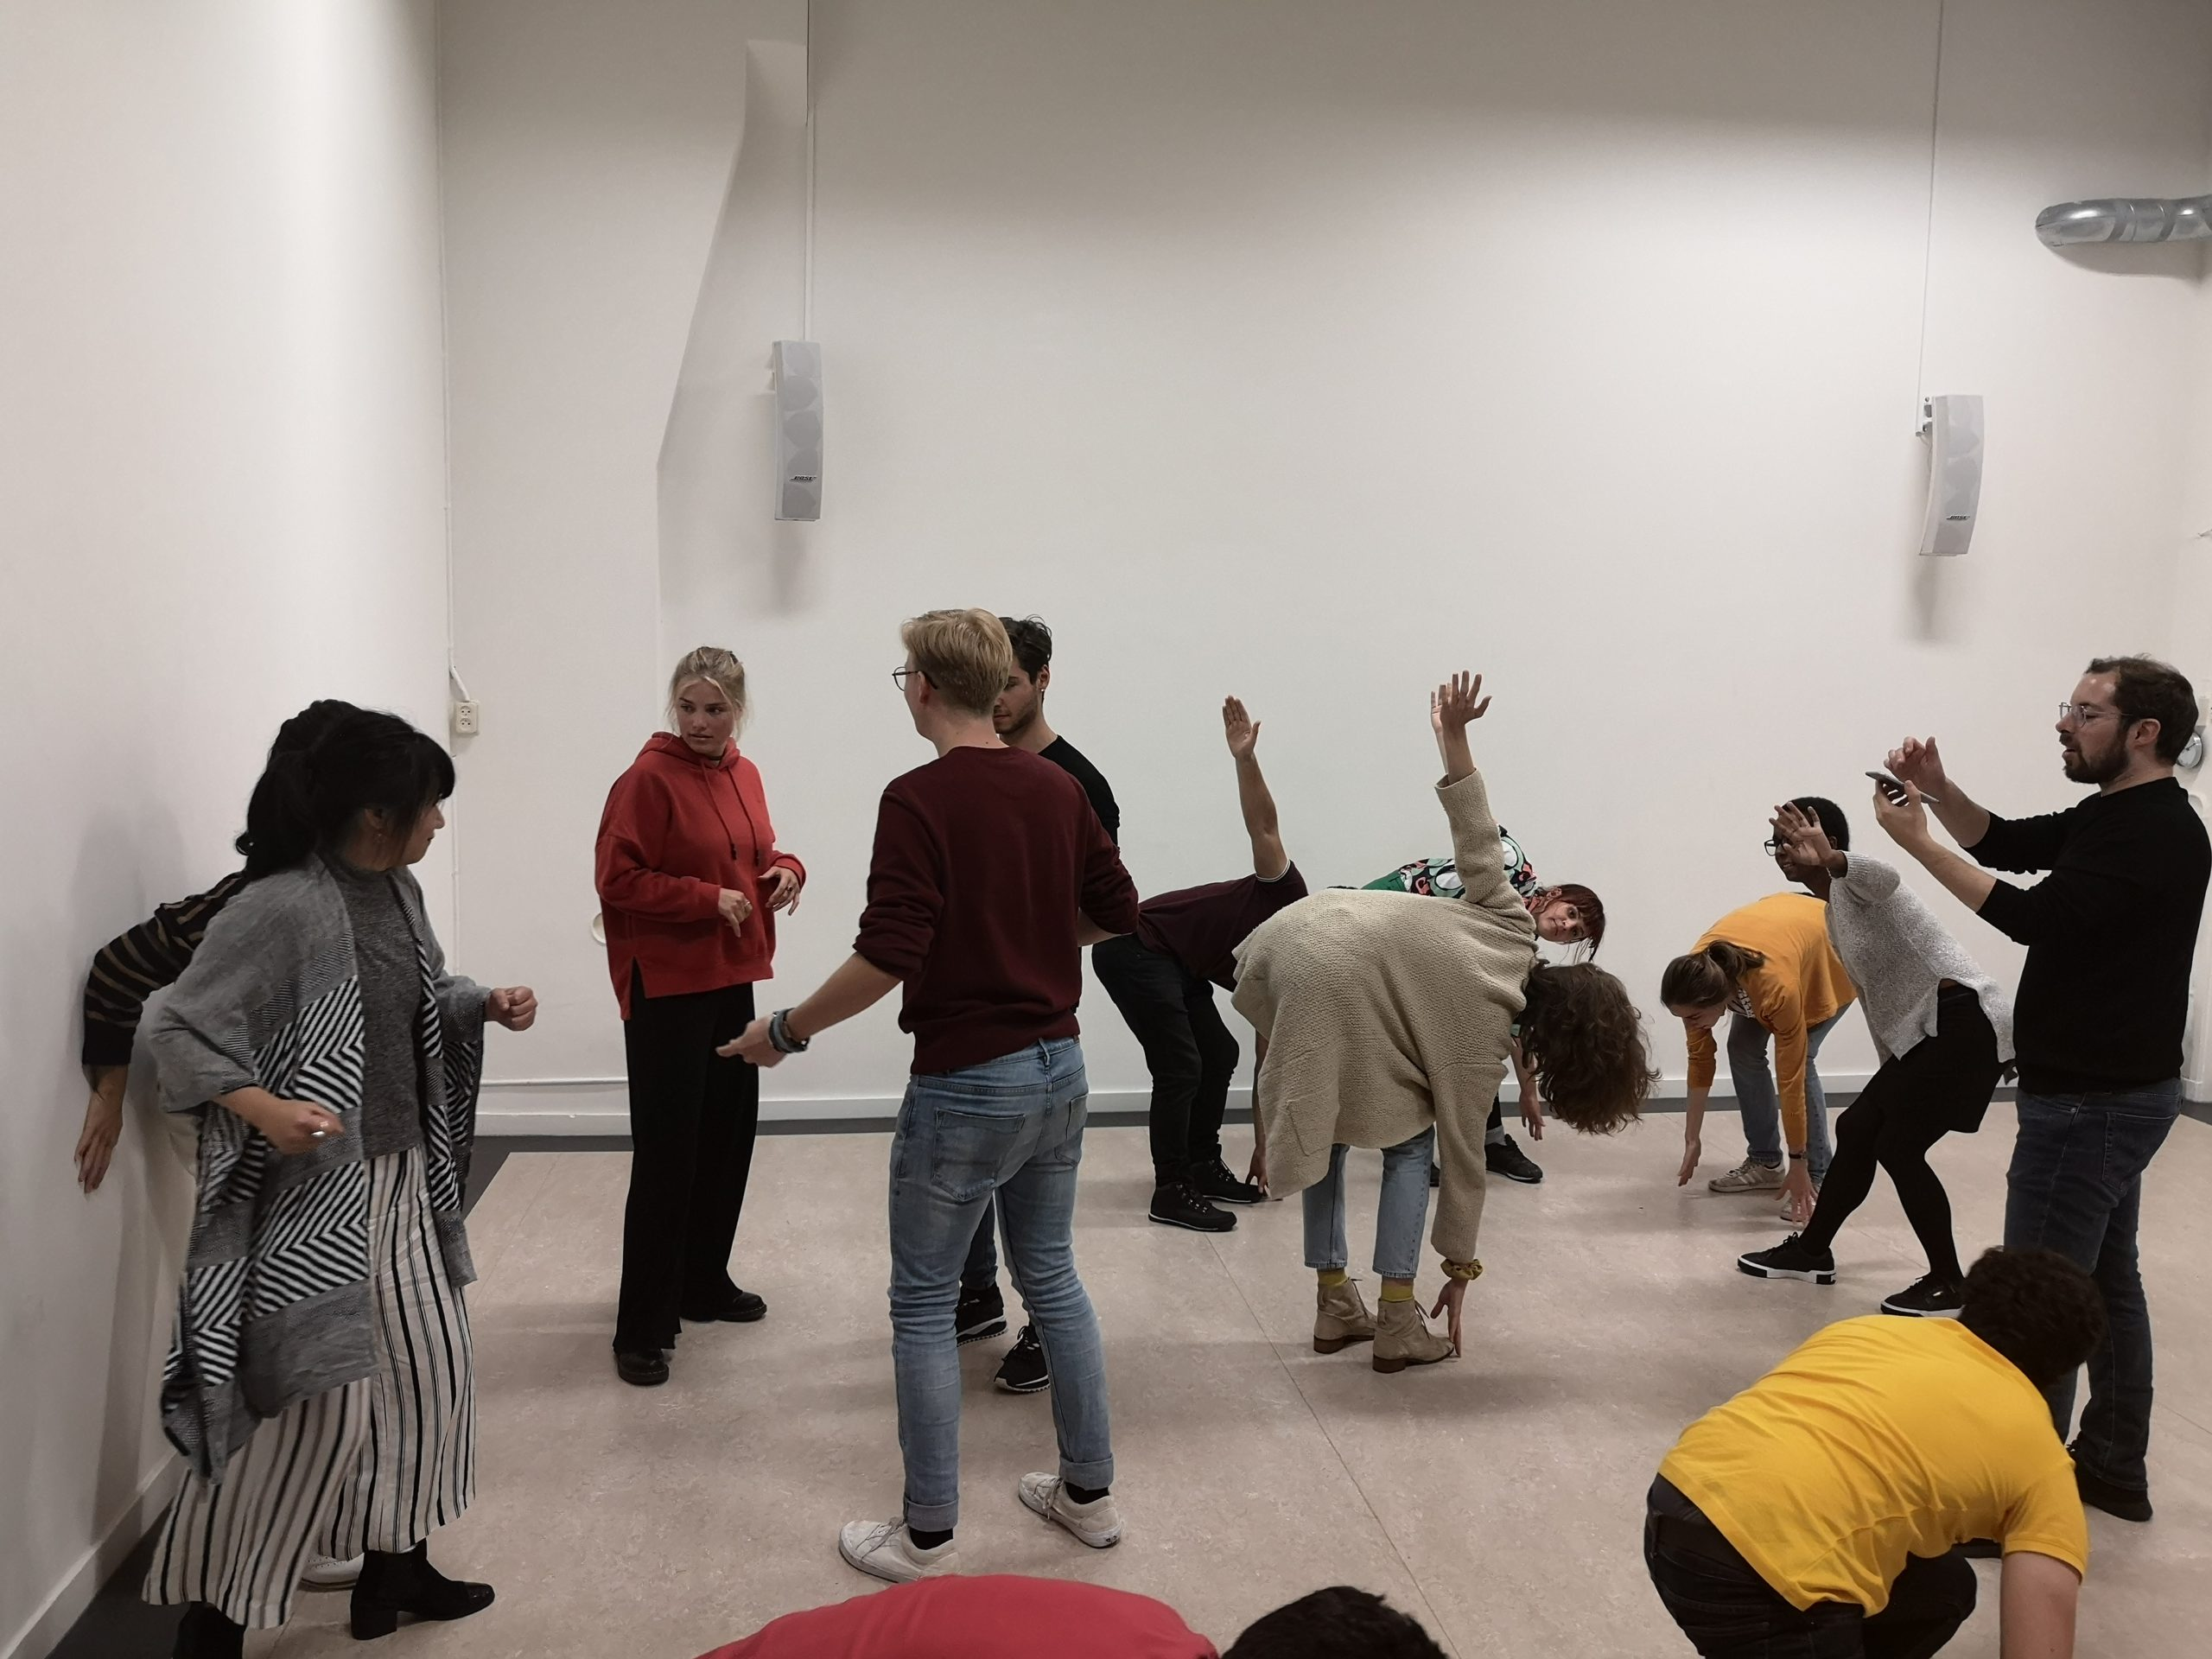 Pure improv for beginners. Group exercise, everybody has a different pose.